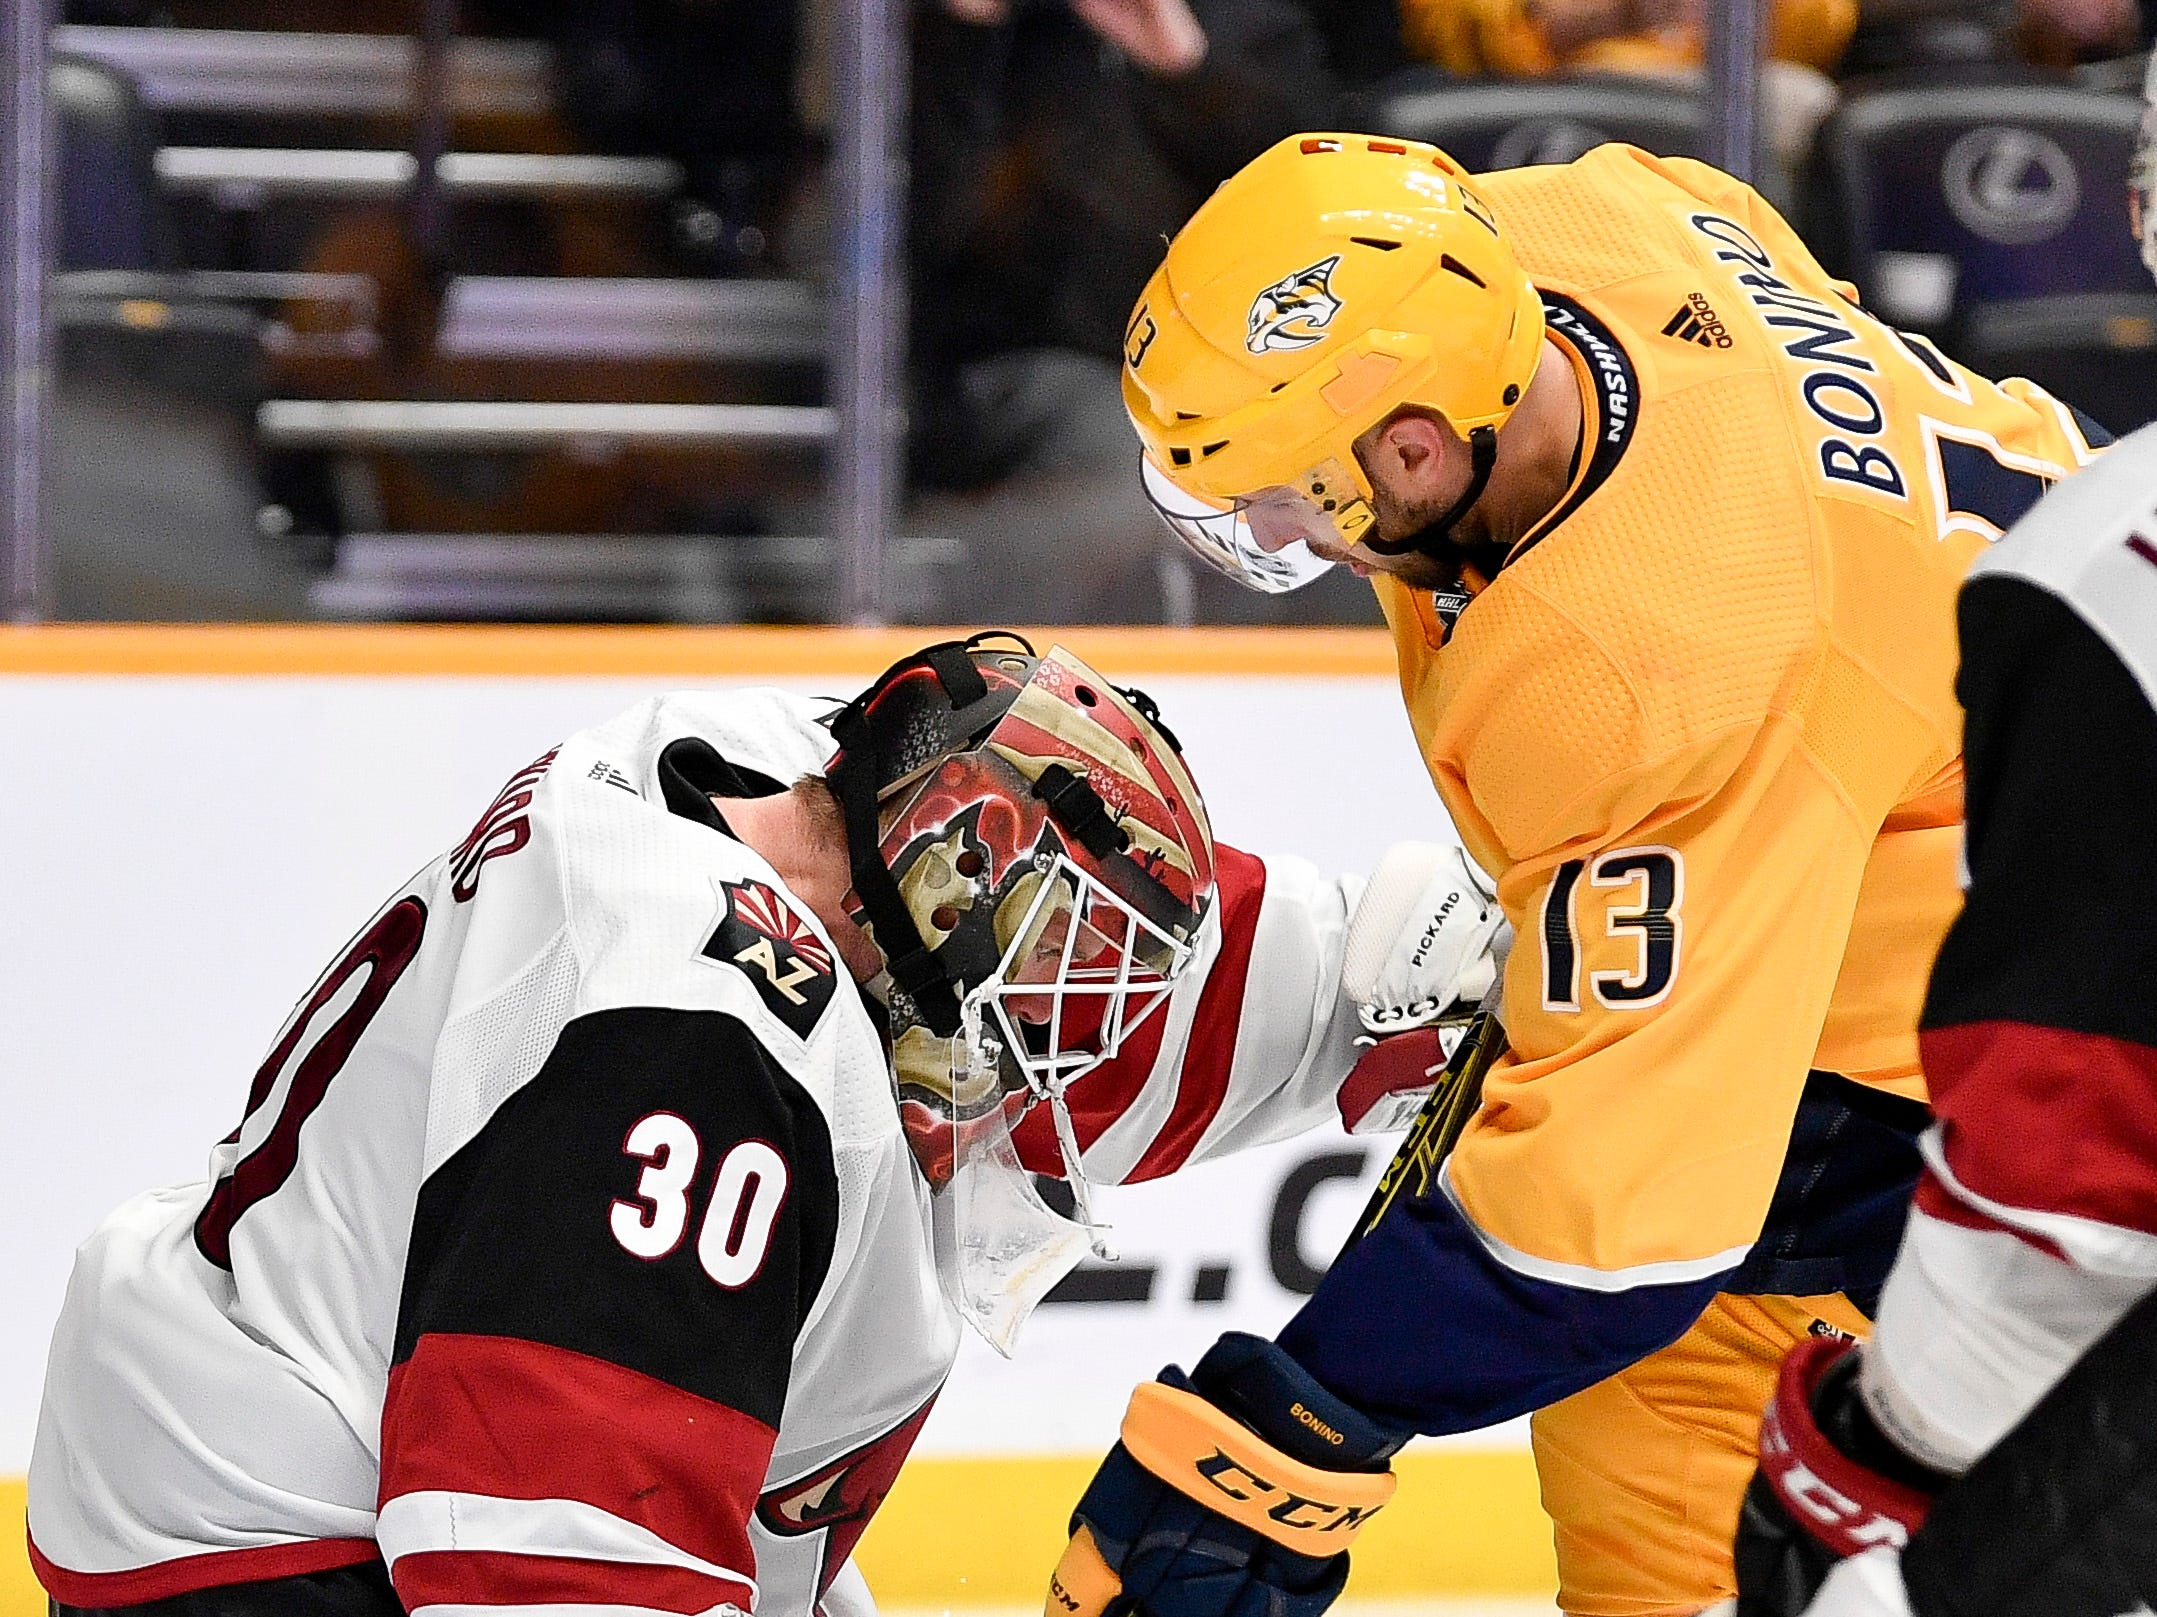 Arizona Coyotes goaltender Calvin Pickard (30) defends against Nashville Predators center Nick Bonino (13) during the third period at Bridgestone Arena in Nashville, Tenn., Tuesday, Feb. 5, 2019.